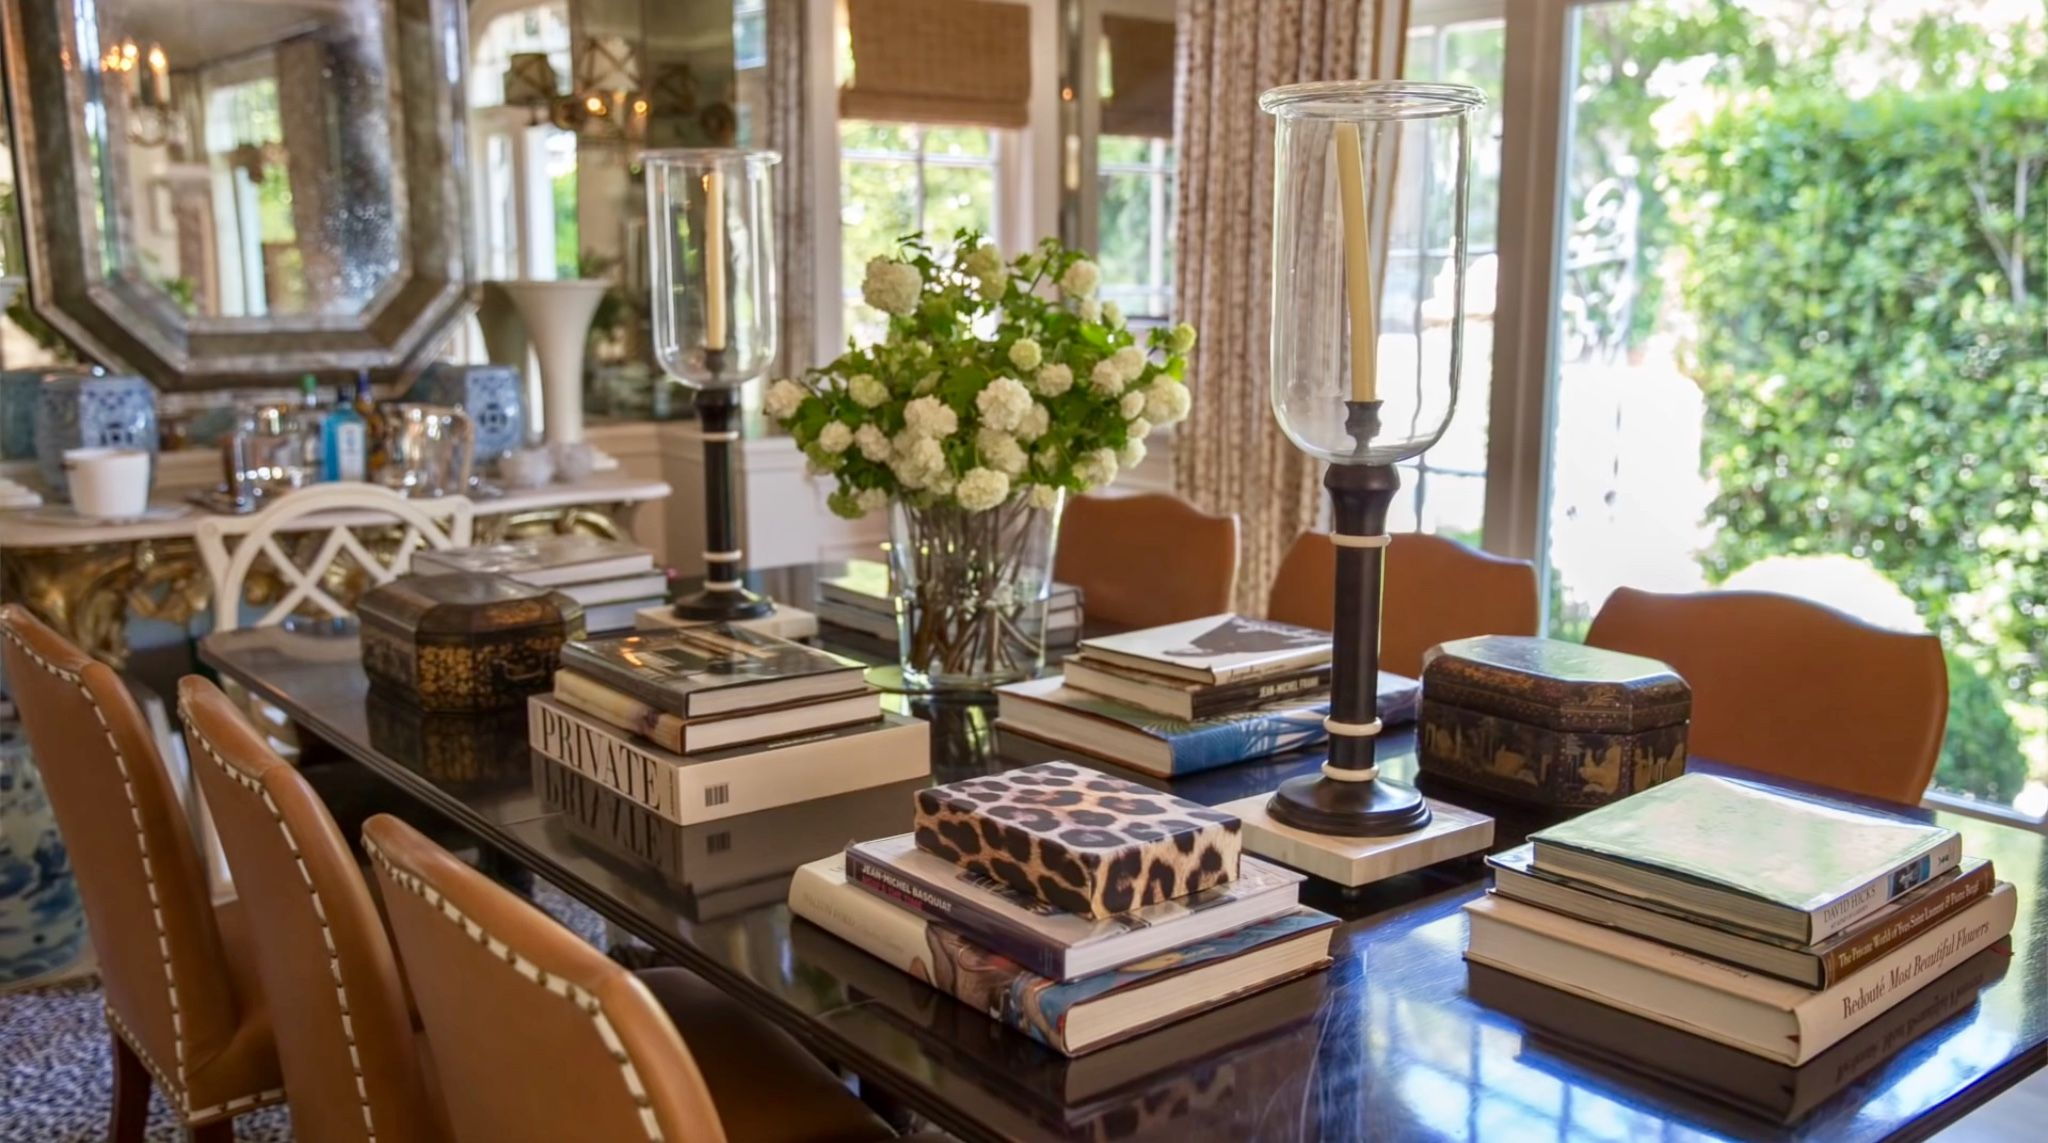 Dining Table Laid With Books